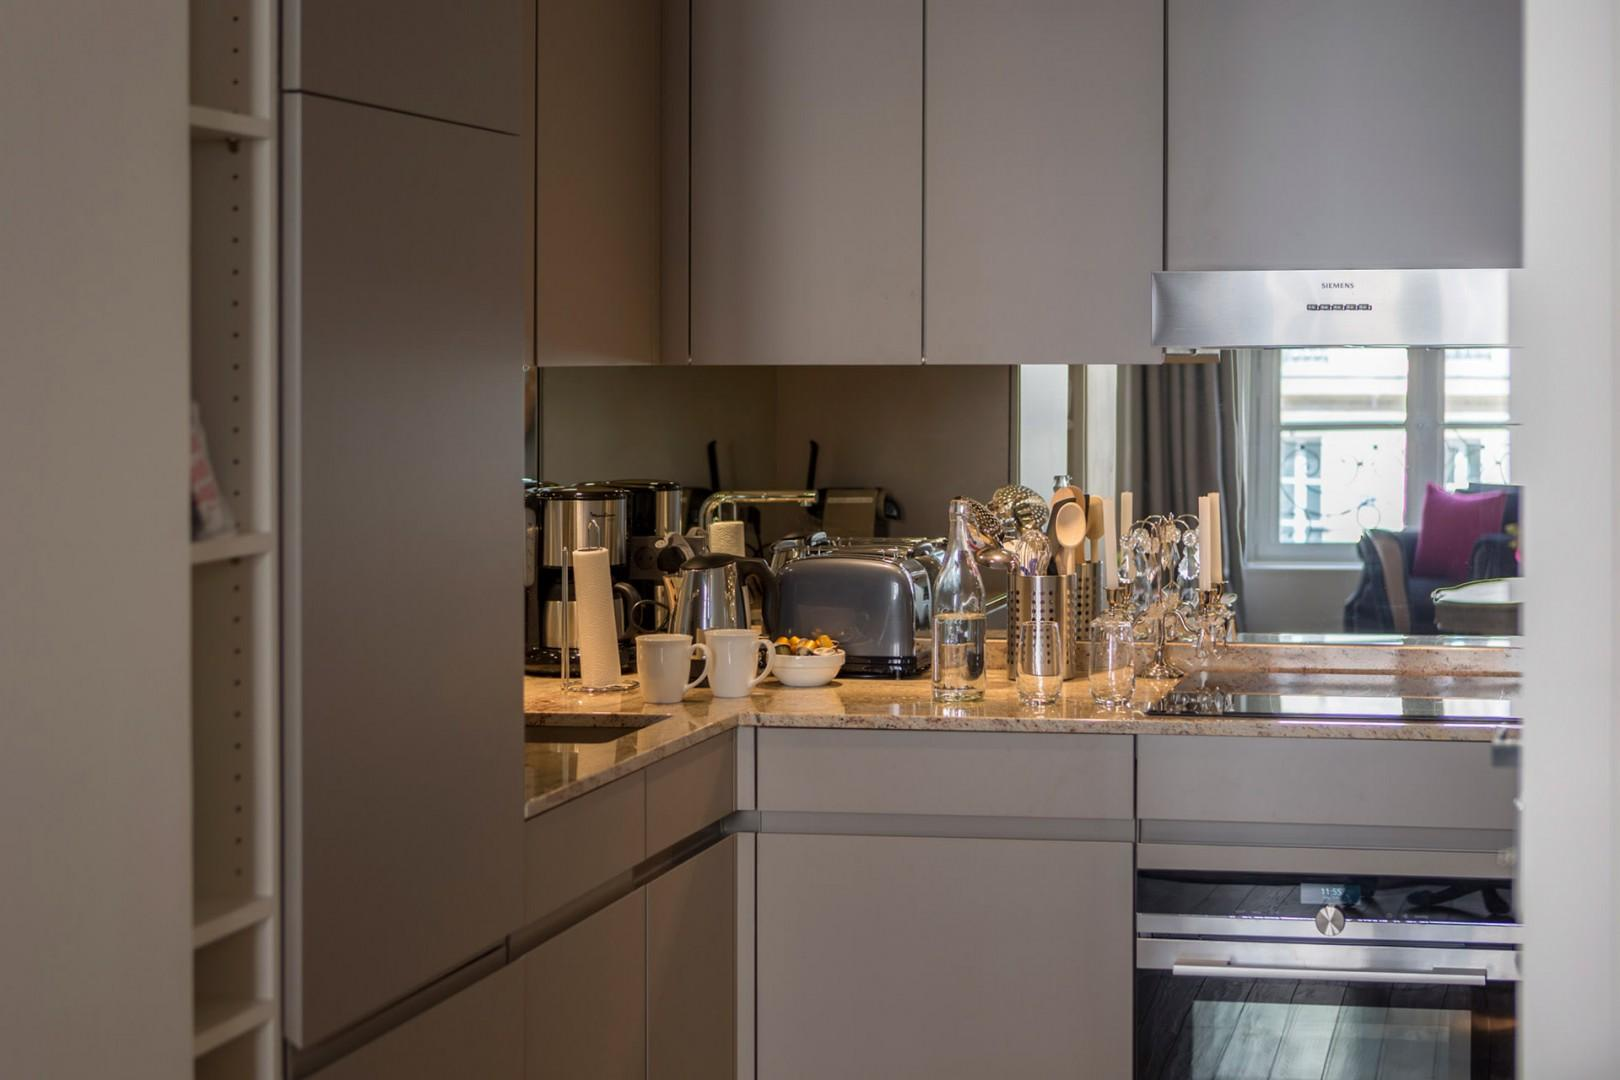 The fully equipped kitchen has top-of-the-line appliances.